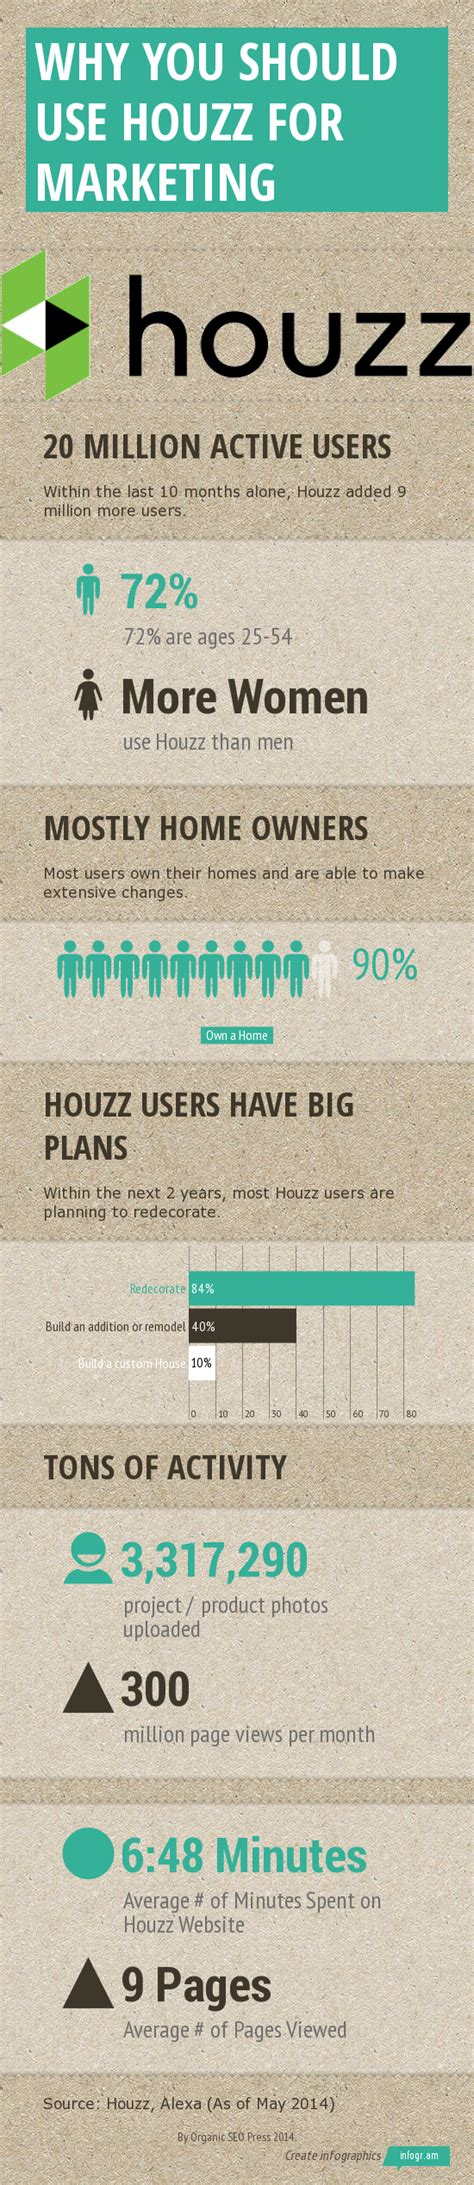 houzz advertising 4 ways to use houzz for your marketing infographic